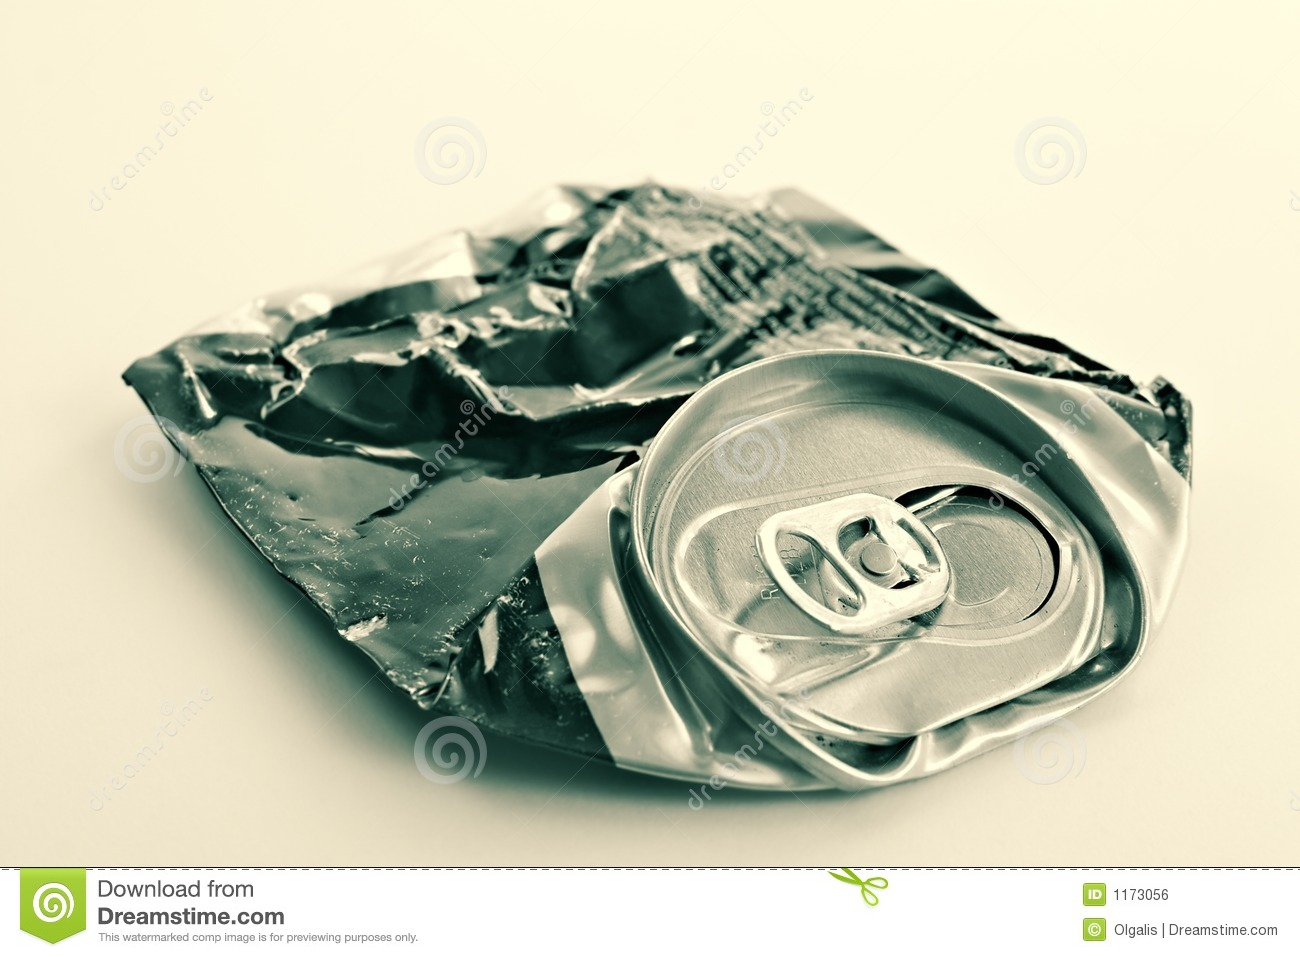 Crushed beer can stock photo. Image of alcohol, finished ...  Crushed Beer Can